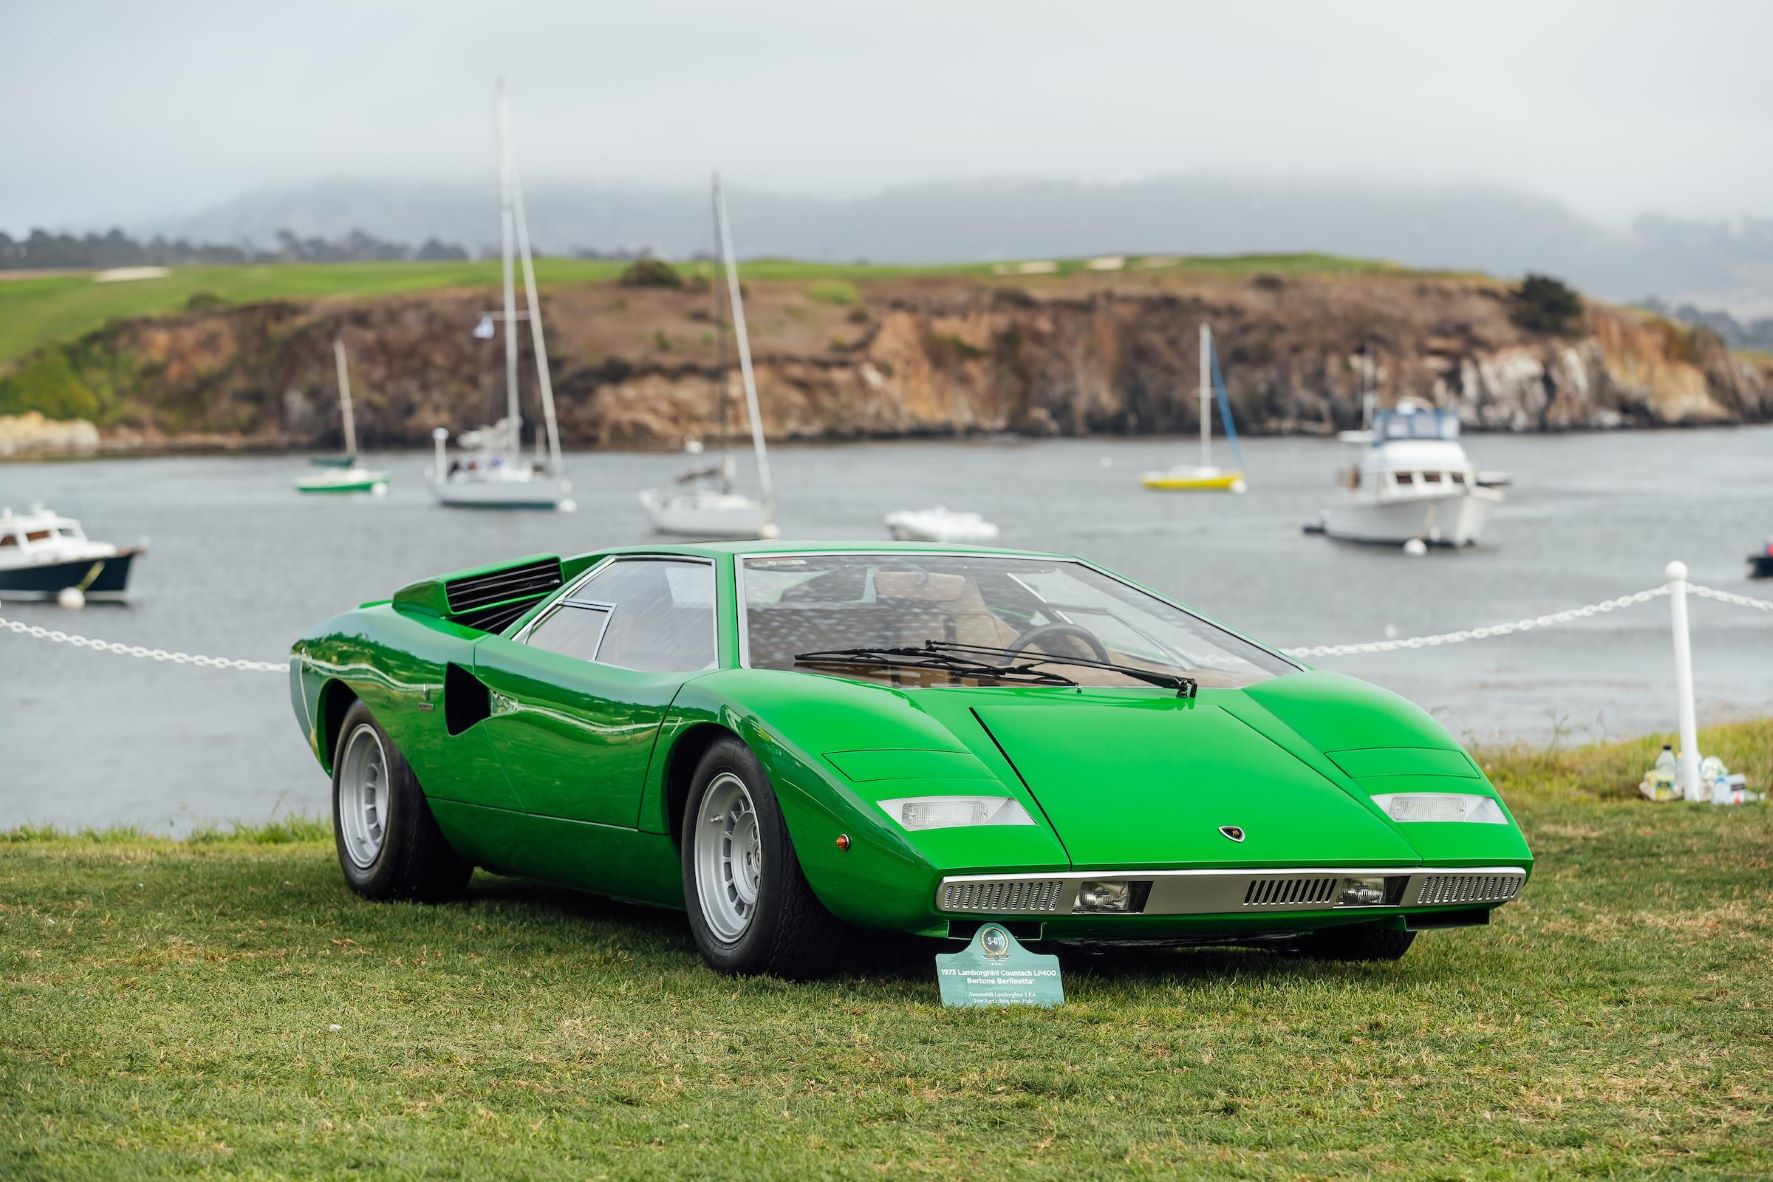 The very first Lamborghini Countach ever made